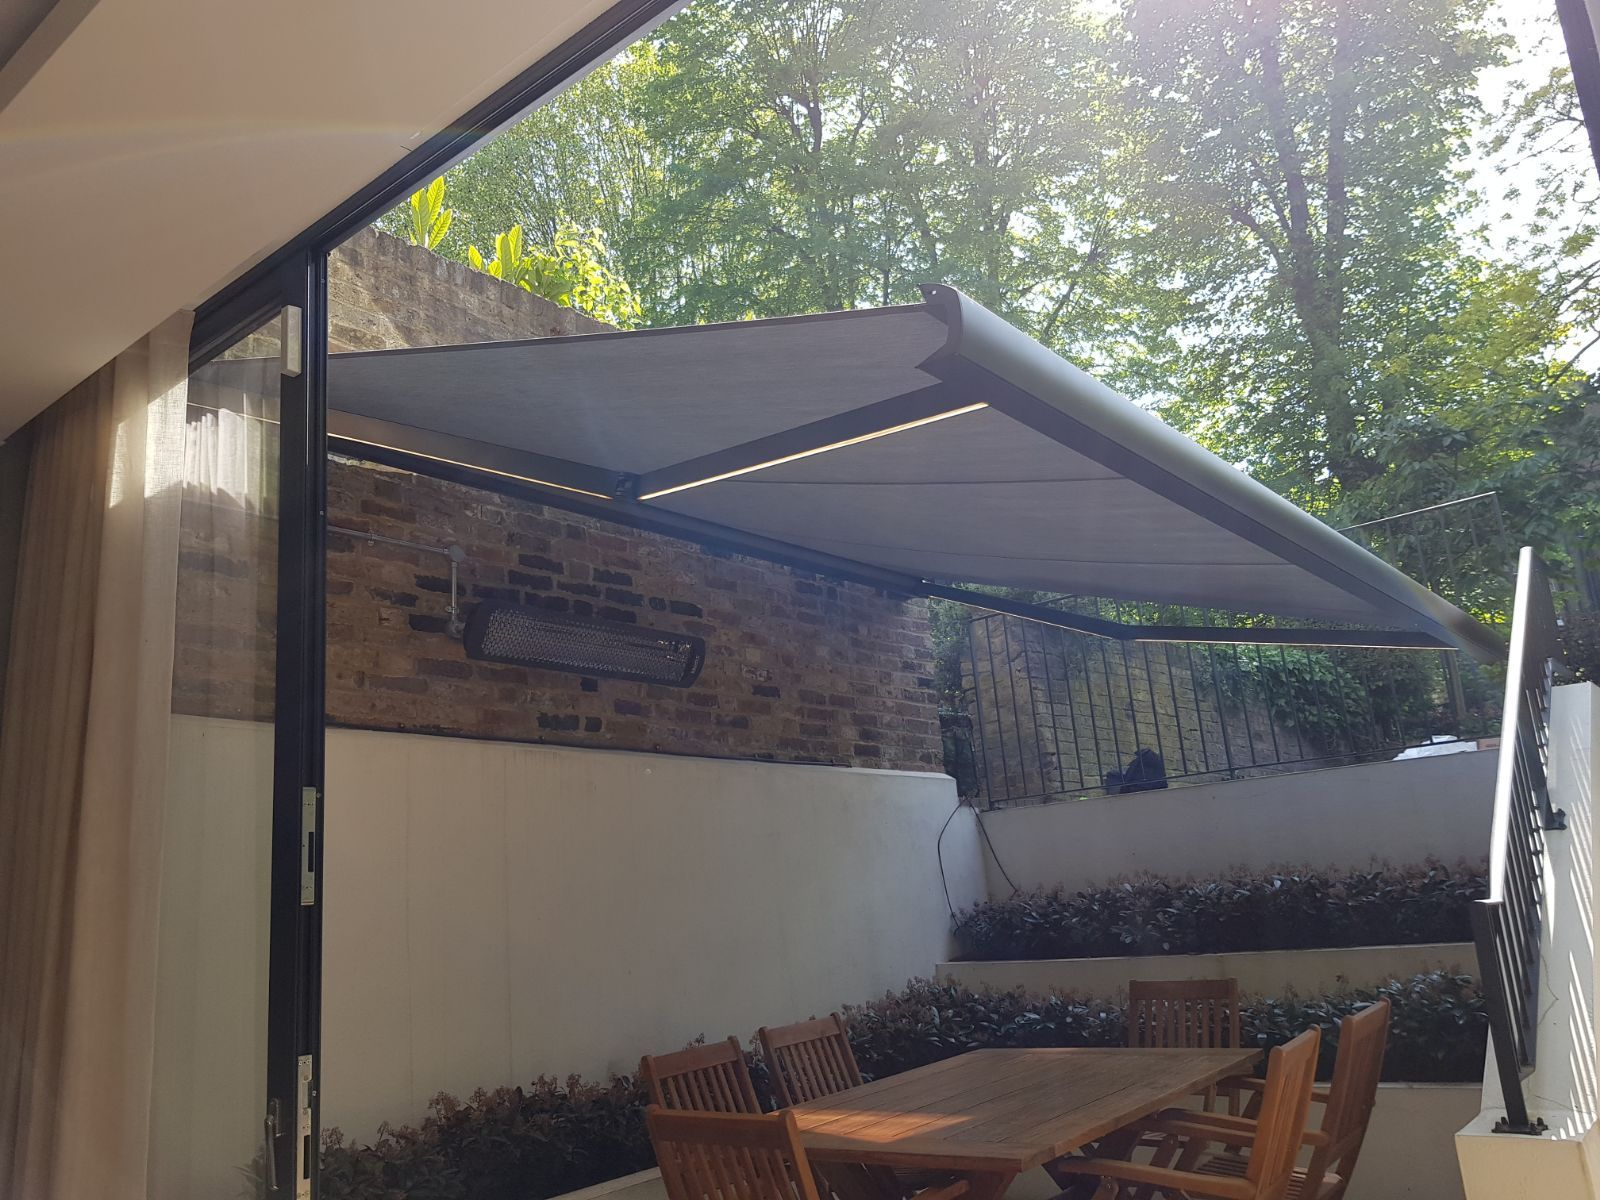 RA - UK Retractable Awnings for Home & Business